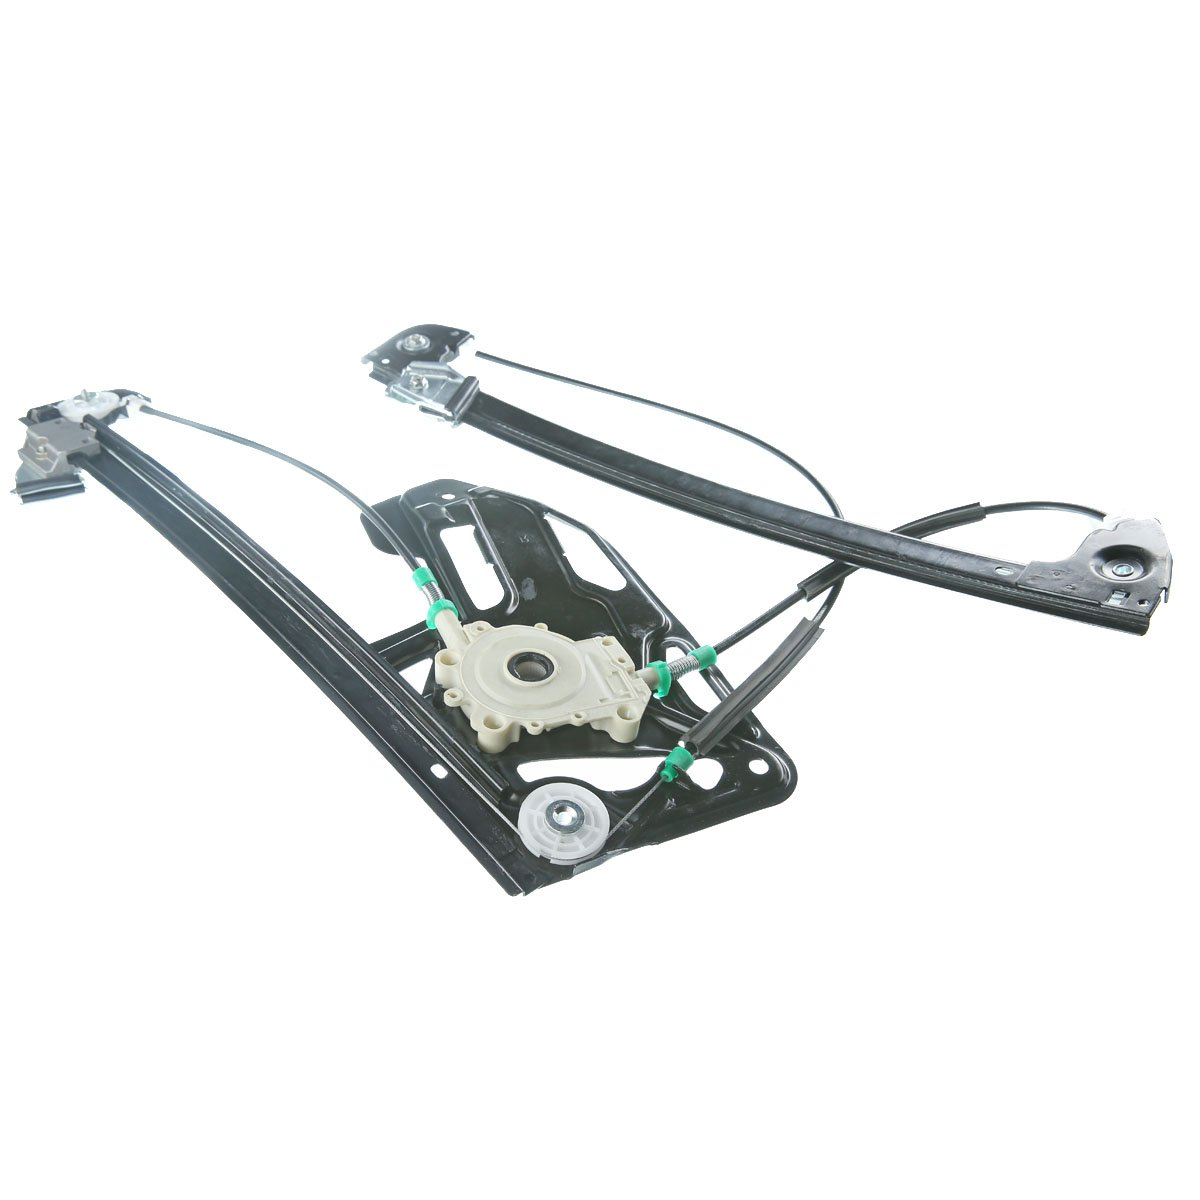 A-Premium Power Window Regulator without Motor for BMW E38 740i 740iL 750iL 1995-2001 Front Right Passenger Side